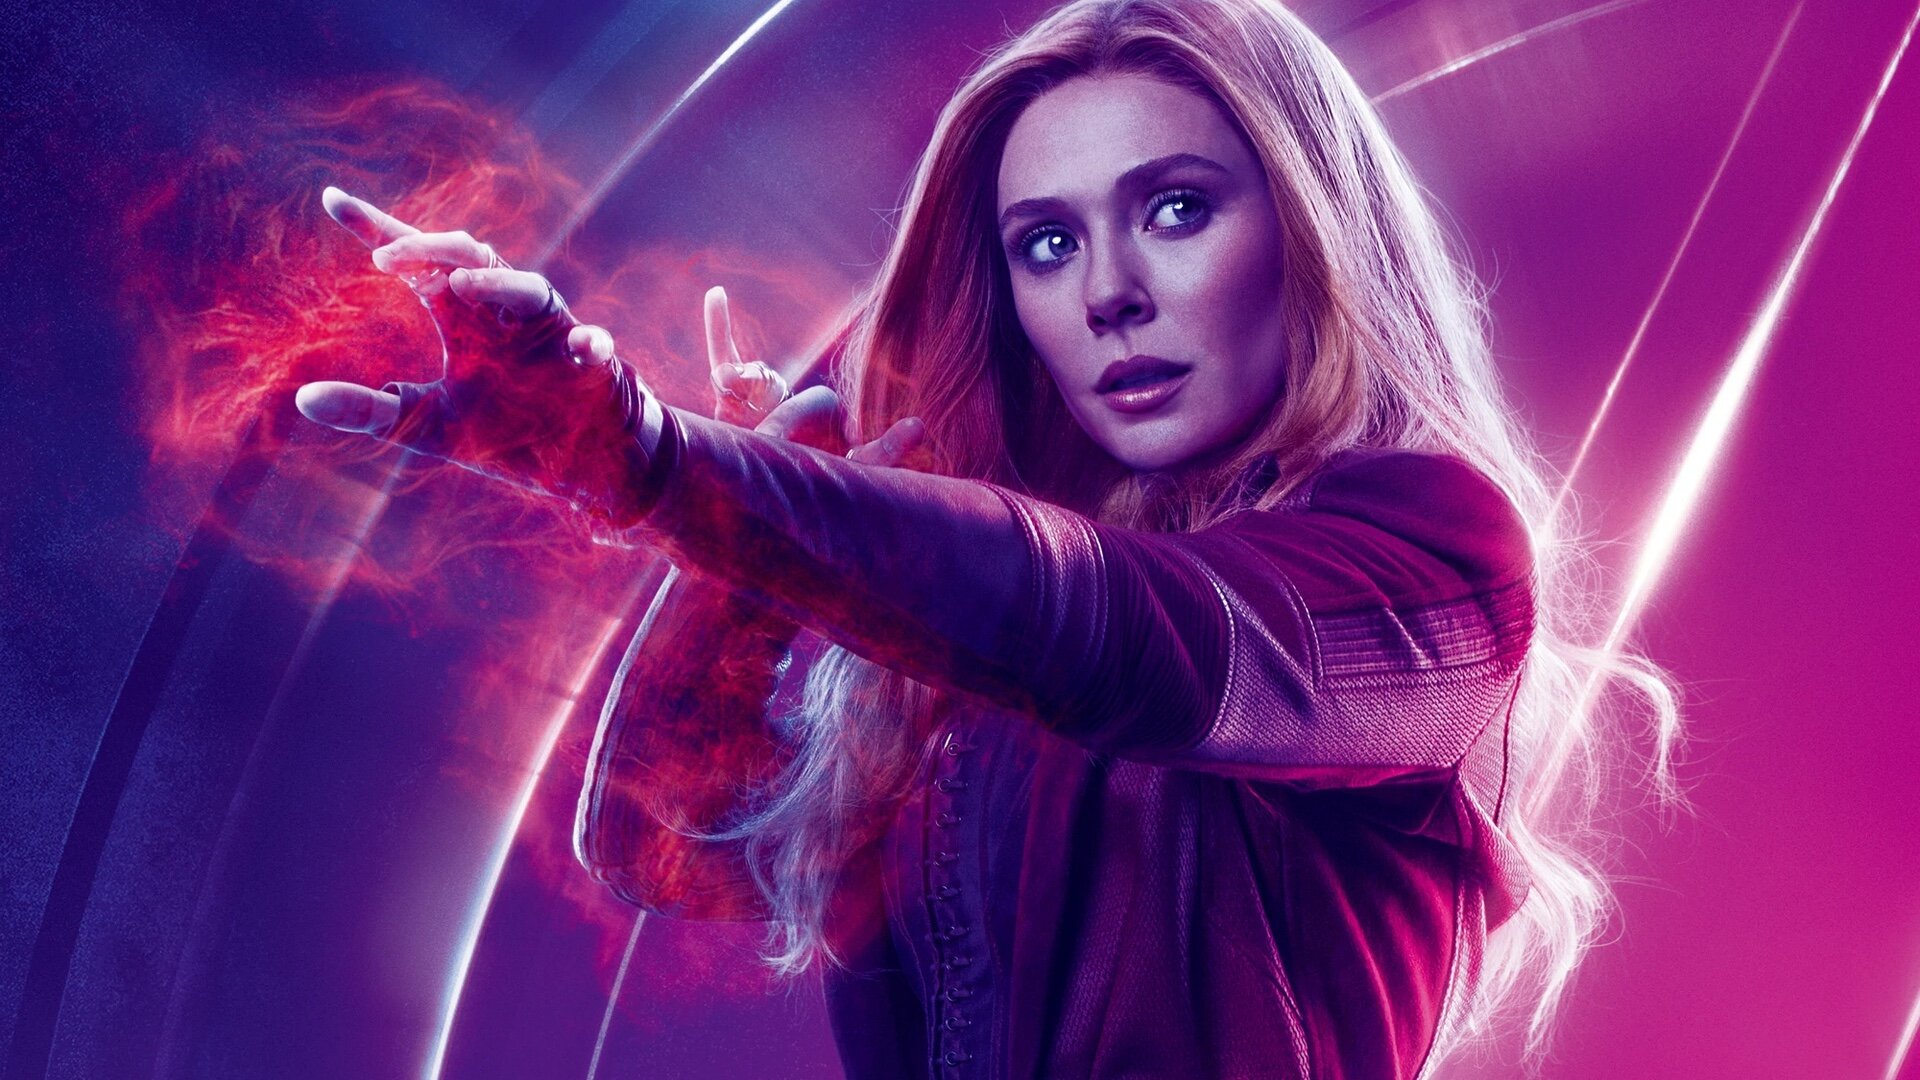 elizabeth-olsen-says-wandavision-will-explore-why-her-character-is-known-as-scarlet-witch-social.jpg